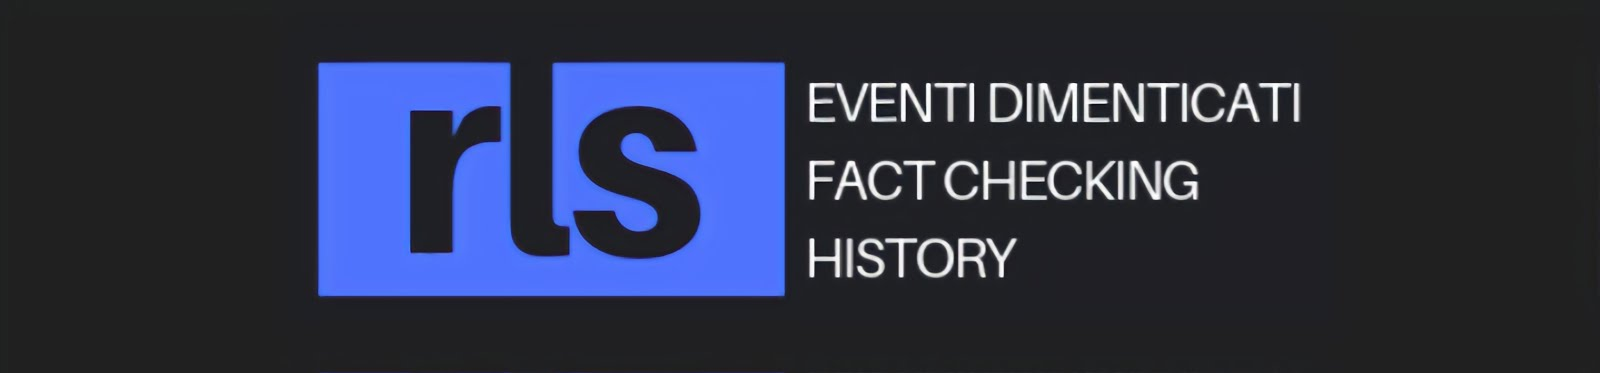 Riscrivere la Storia - Eventi Dimenticati - Fact Checking History